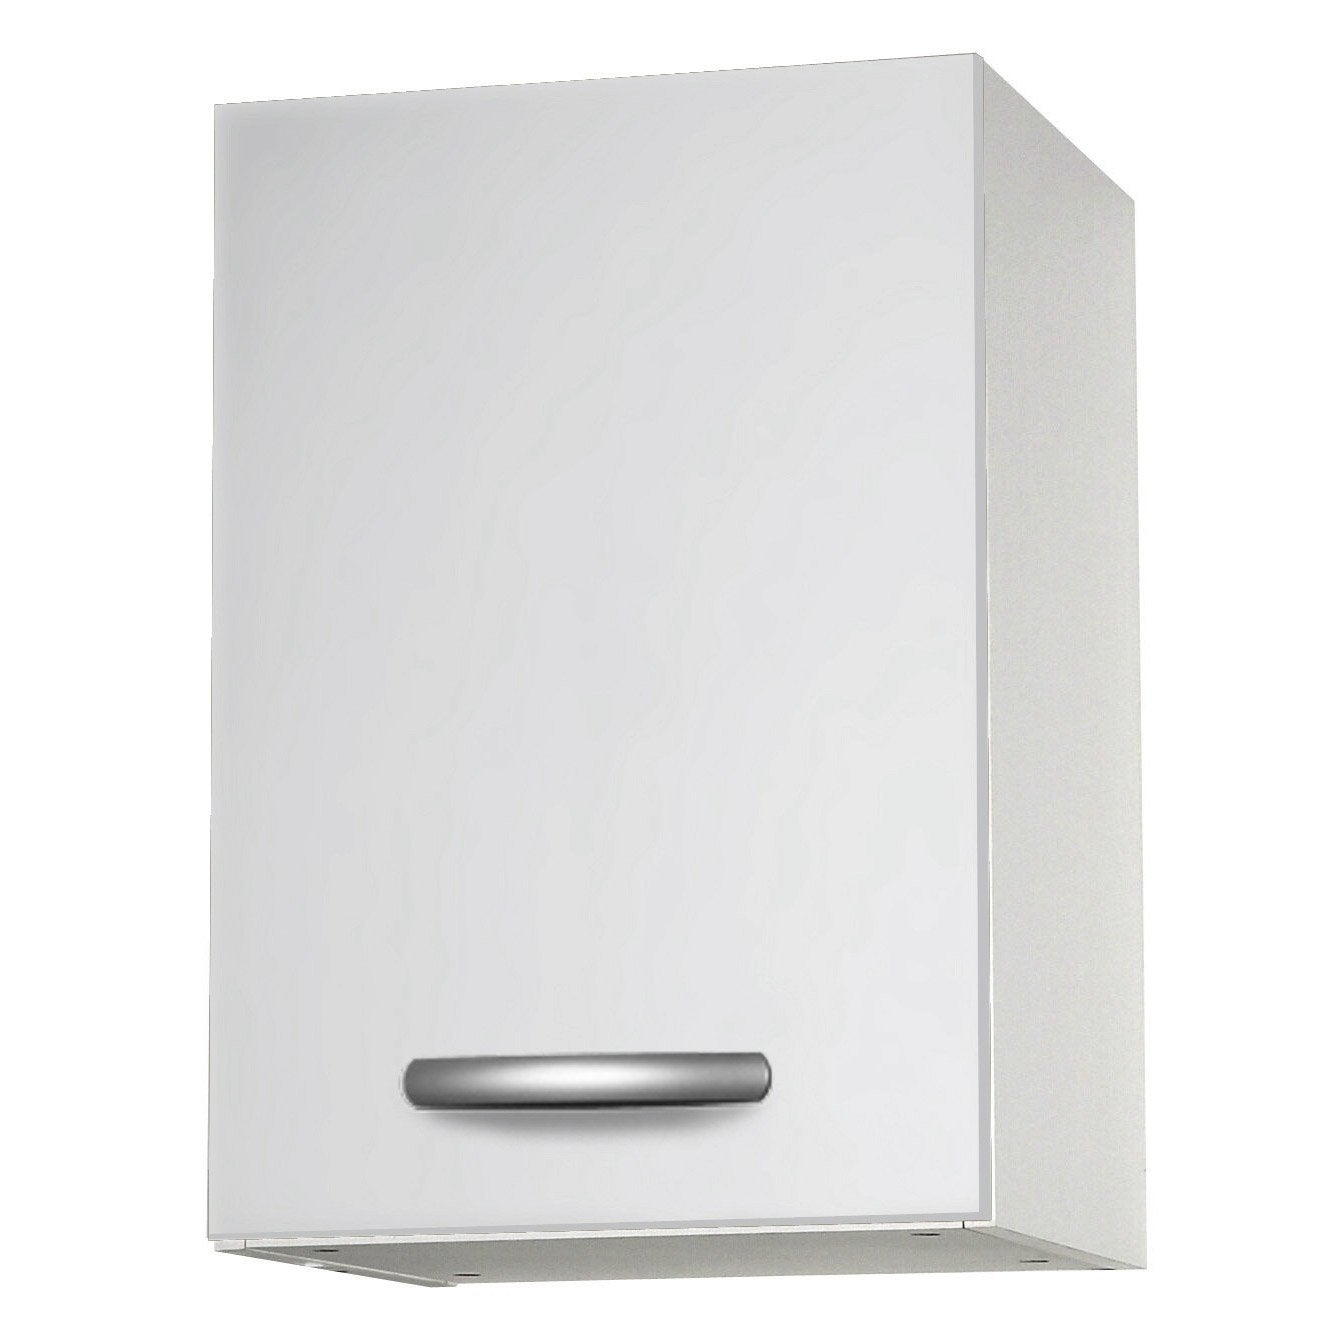 Meuble de cuisine haut 1 porte blanc l40x for Portes elements cuisine leroy merlin